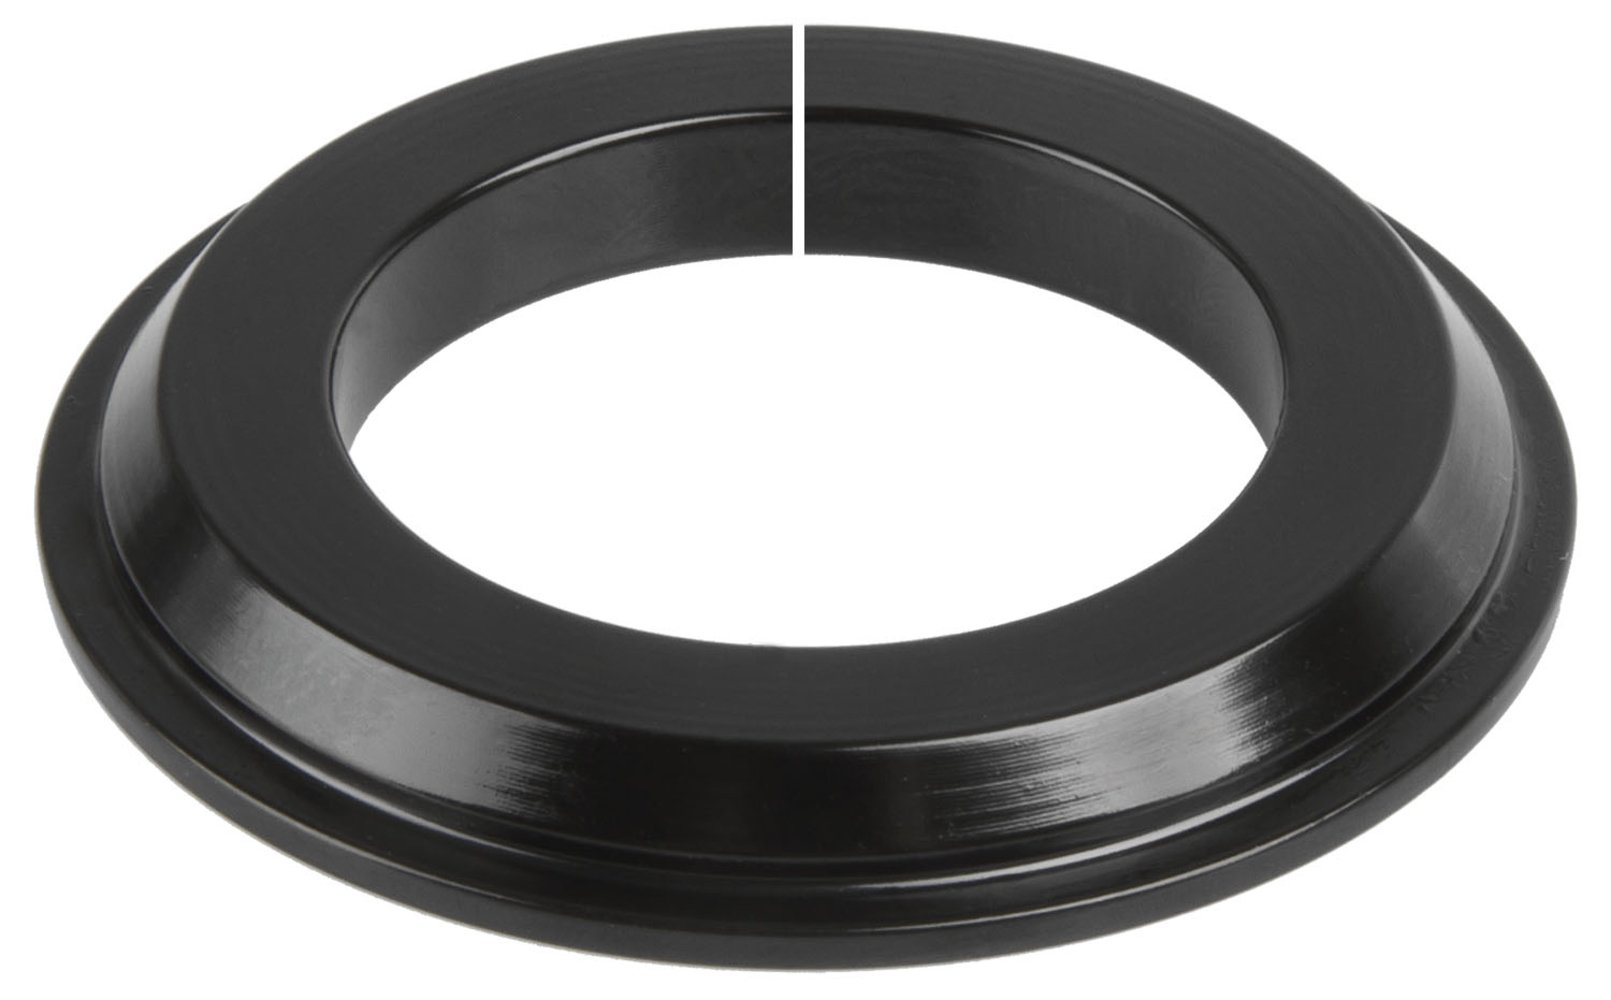 Ventura Crown Race Reducer for 1.5-1.1/8 inch Headsets